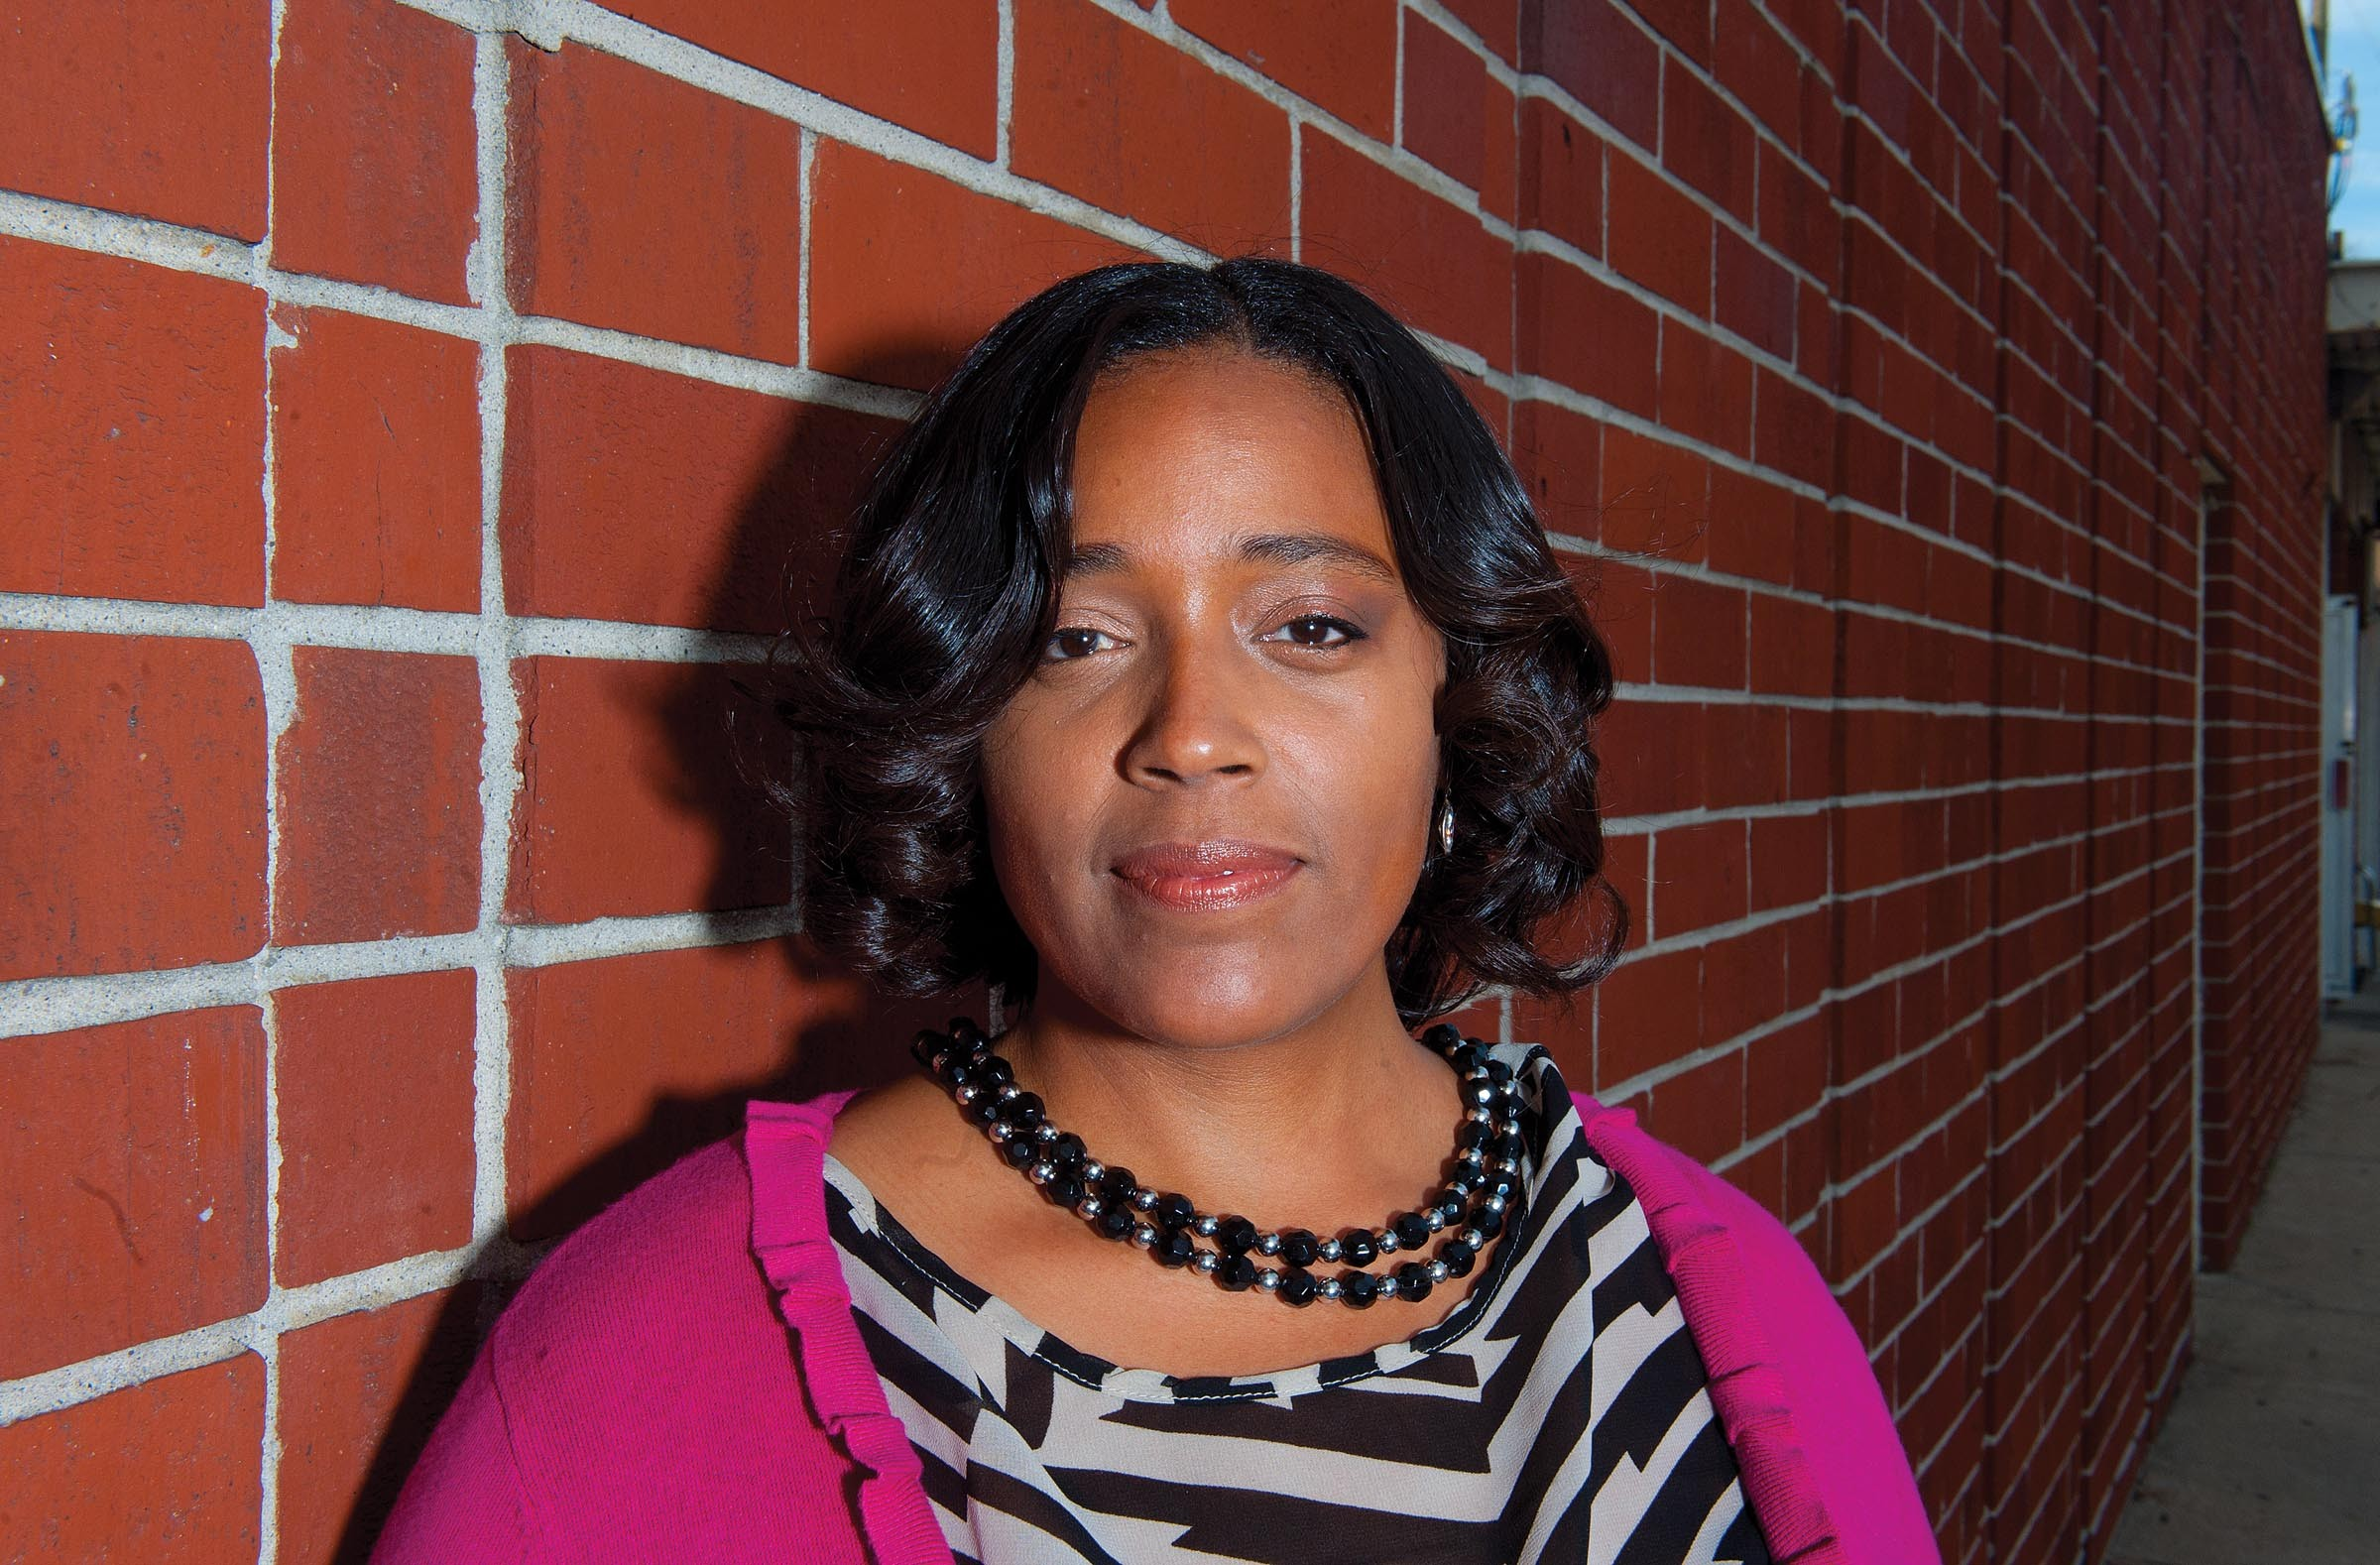 """Tanya Street worked as a prostitute for a year and a half. She now speaks out against human trafficking, and began a motivational program called Identifiable Me. Sexual integrity is important, she says: """"If you don't value and treasure it someone else will. Even though I was violated — yes it did violate me — but it didn't change me."""" - SCOTT ELMQUIST"""